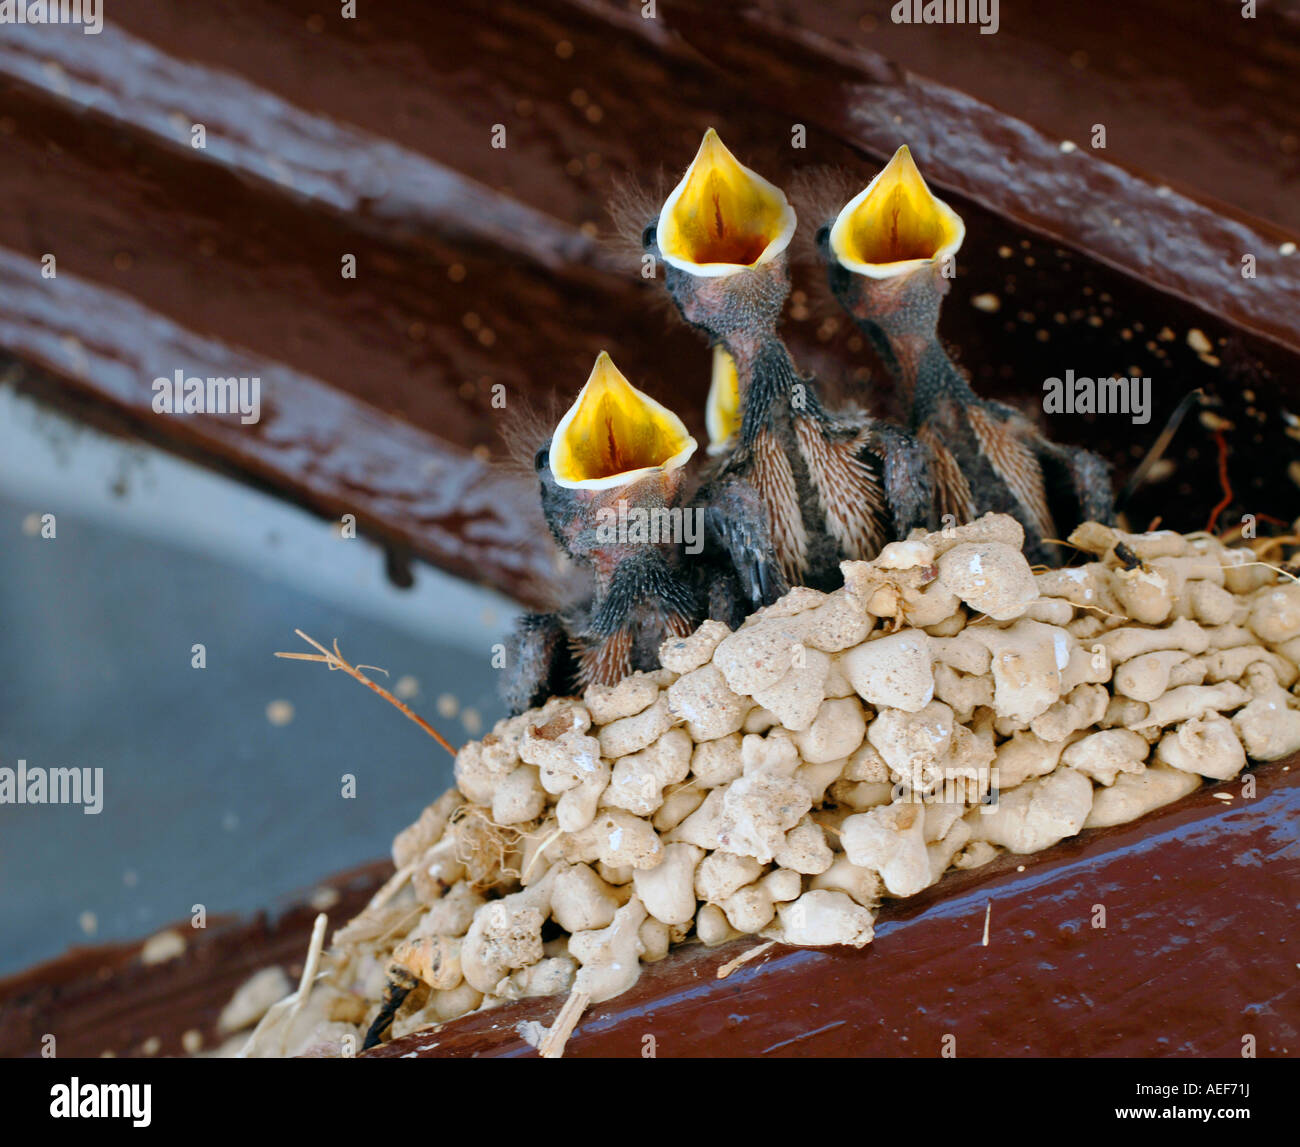 Small baby birds in a nest chirping to be fed with gaping beaks - Stock Image